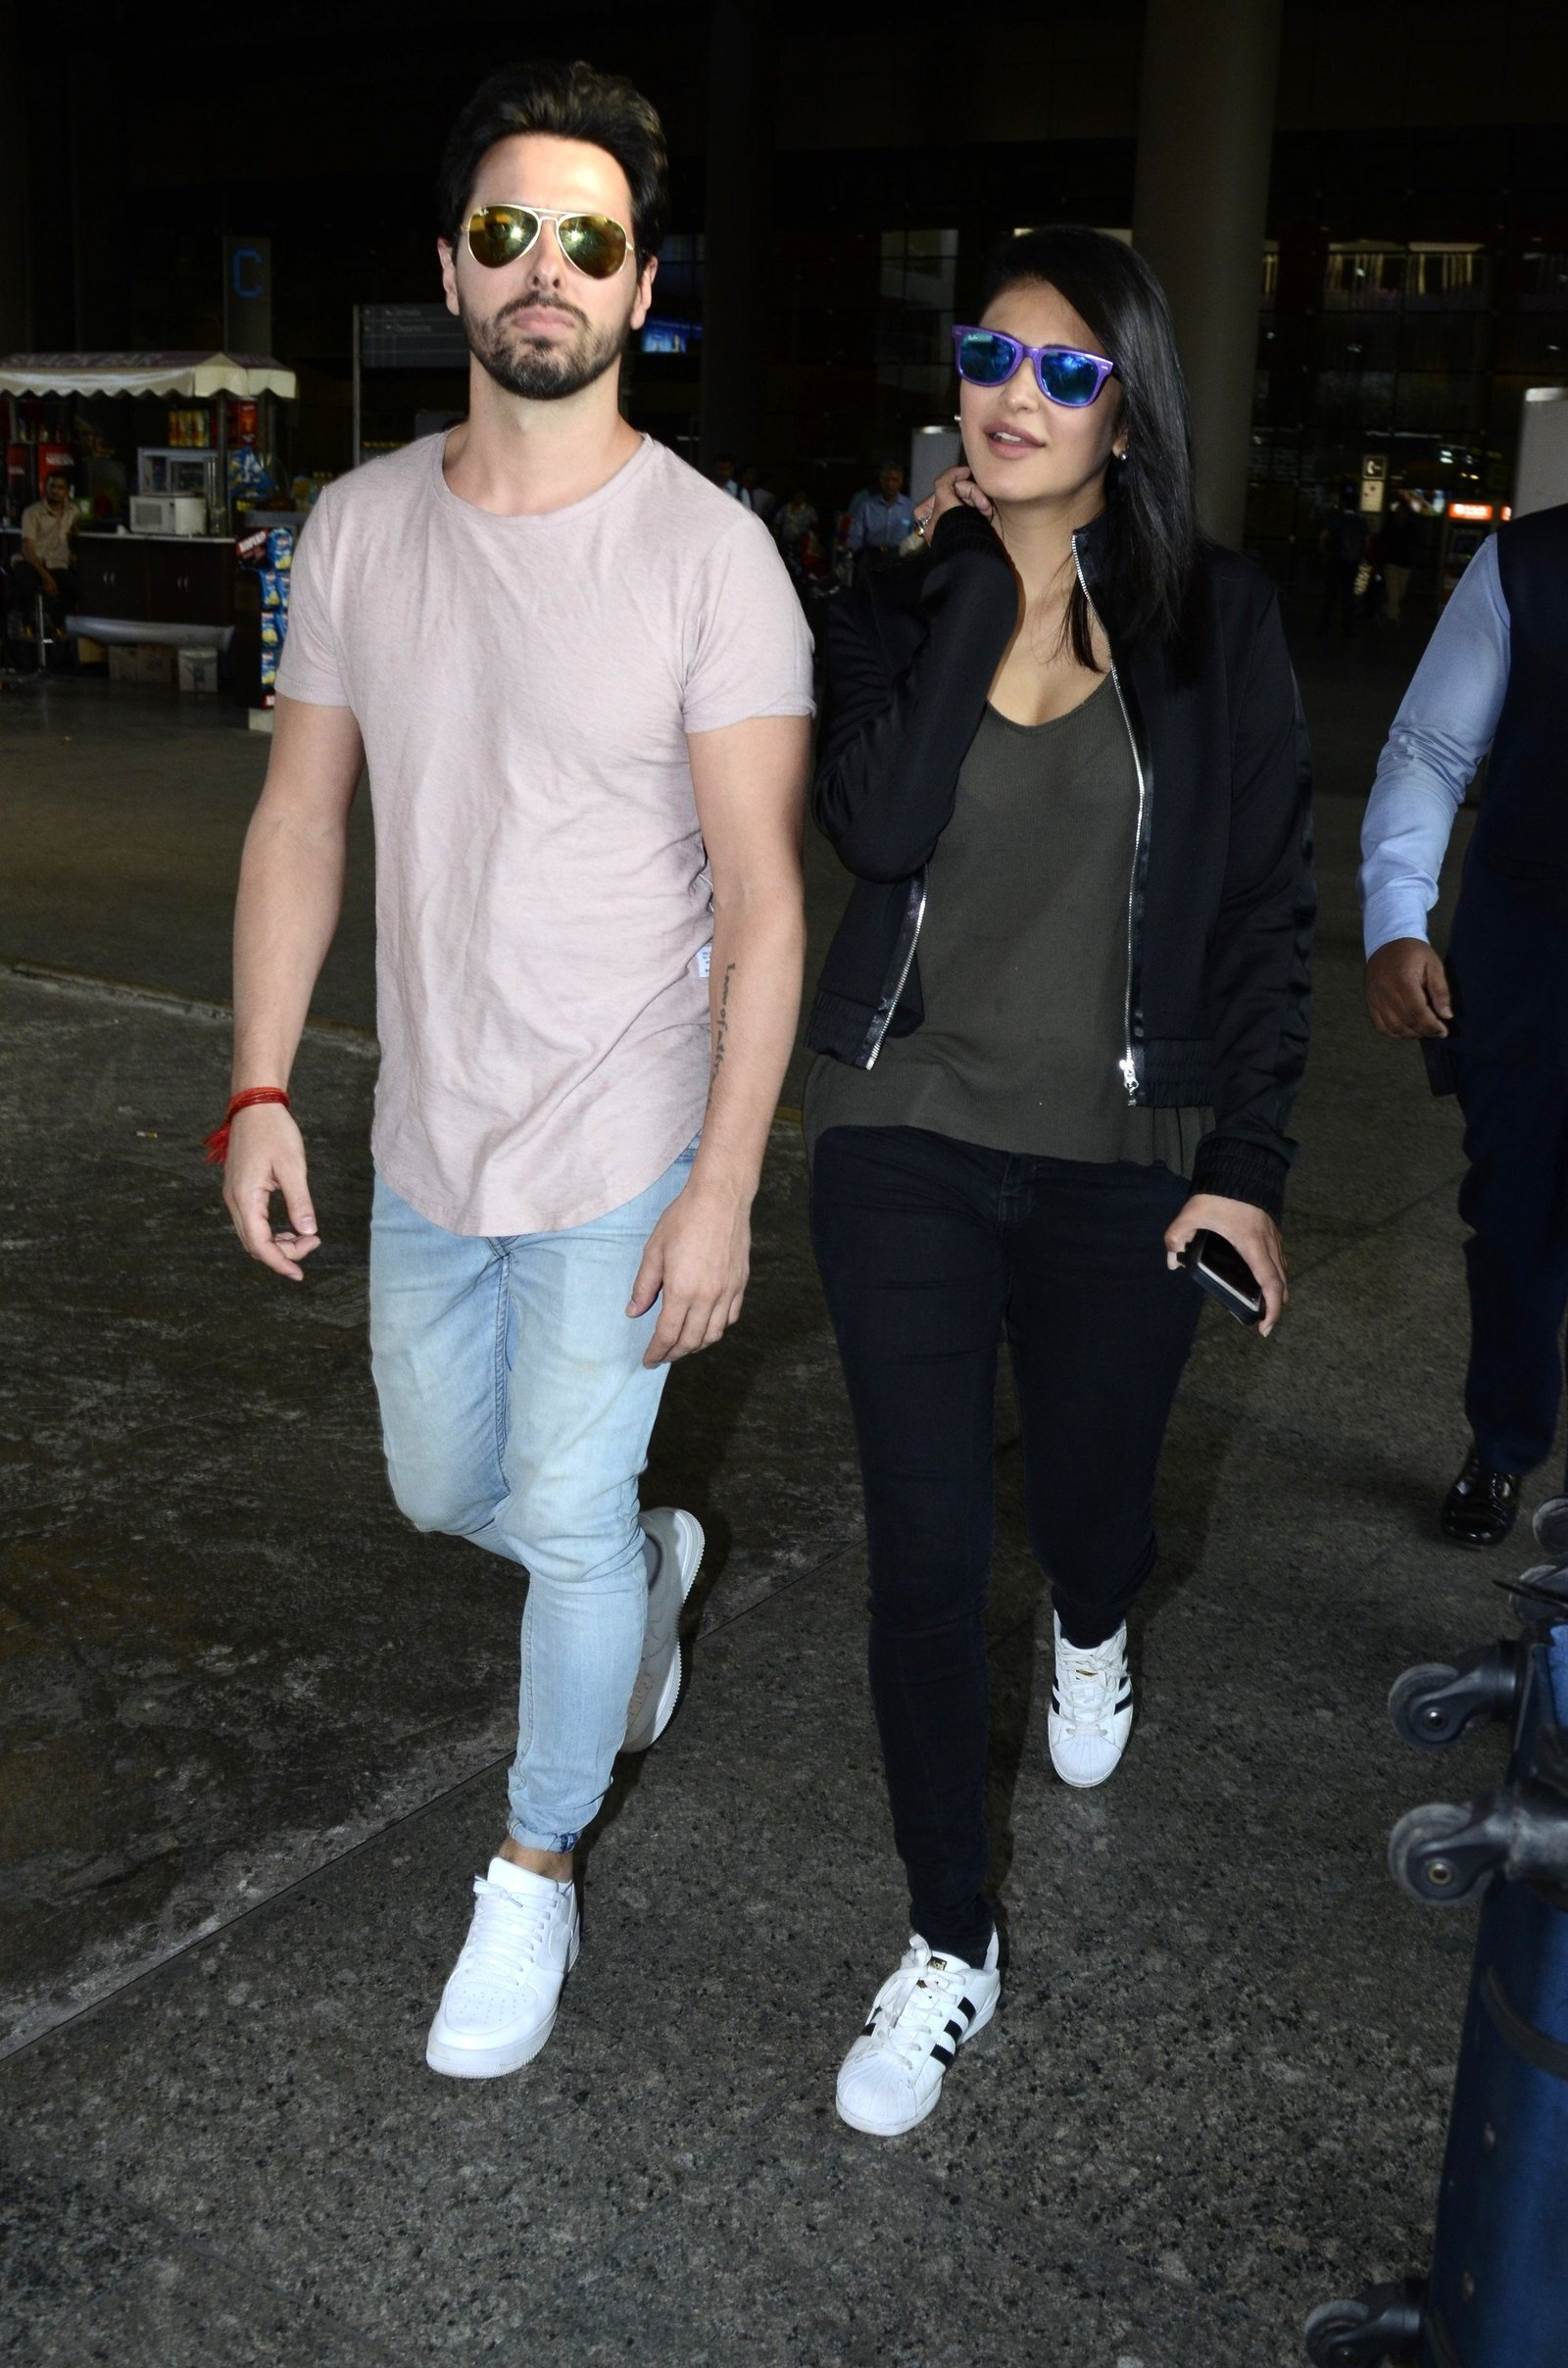 Shruti Haasan with Boy Friend spotted at International Airport Images